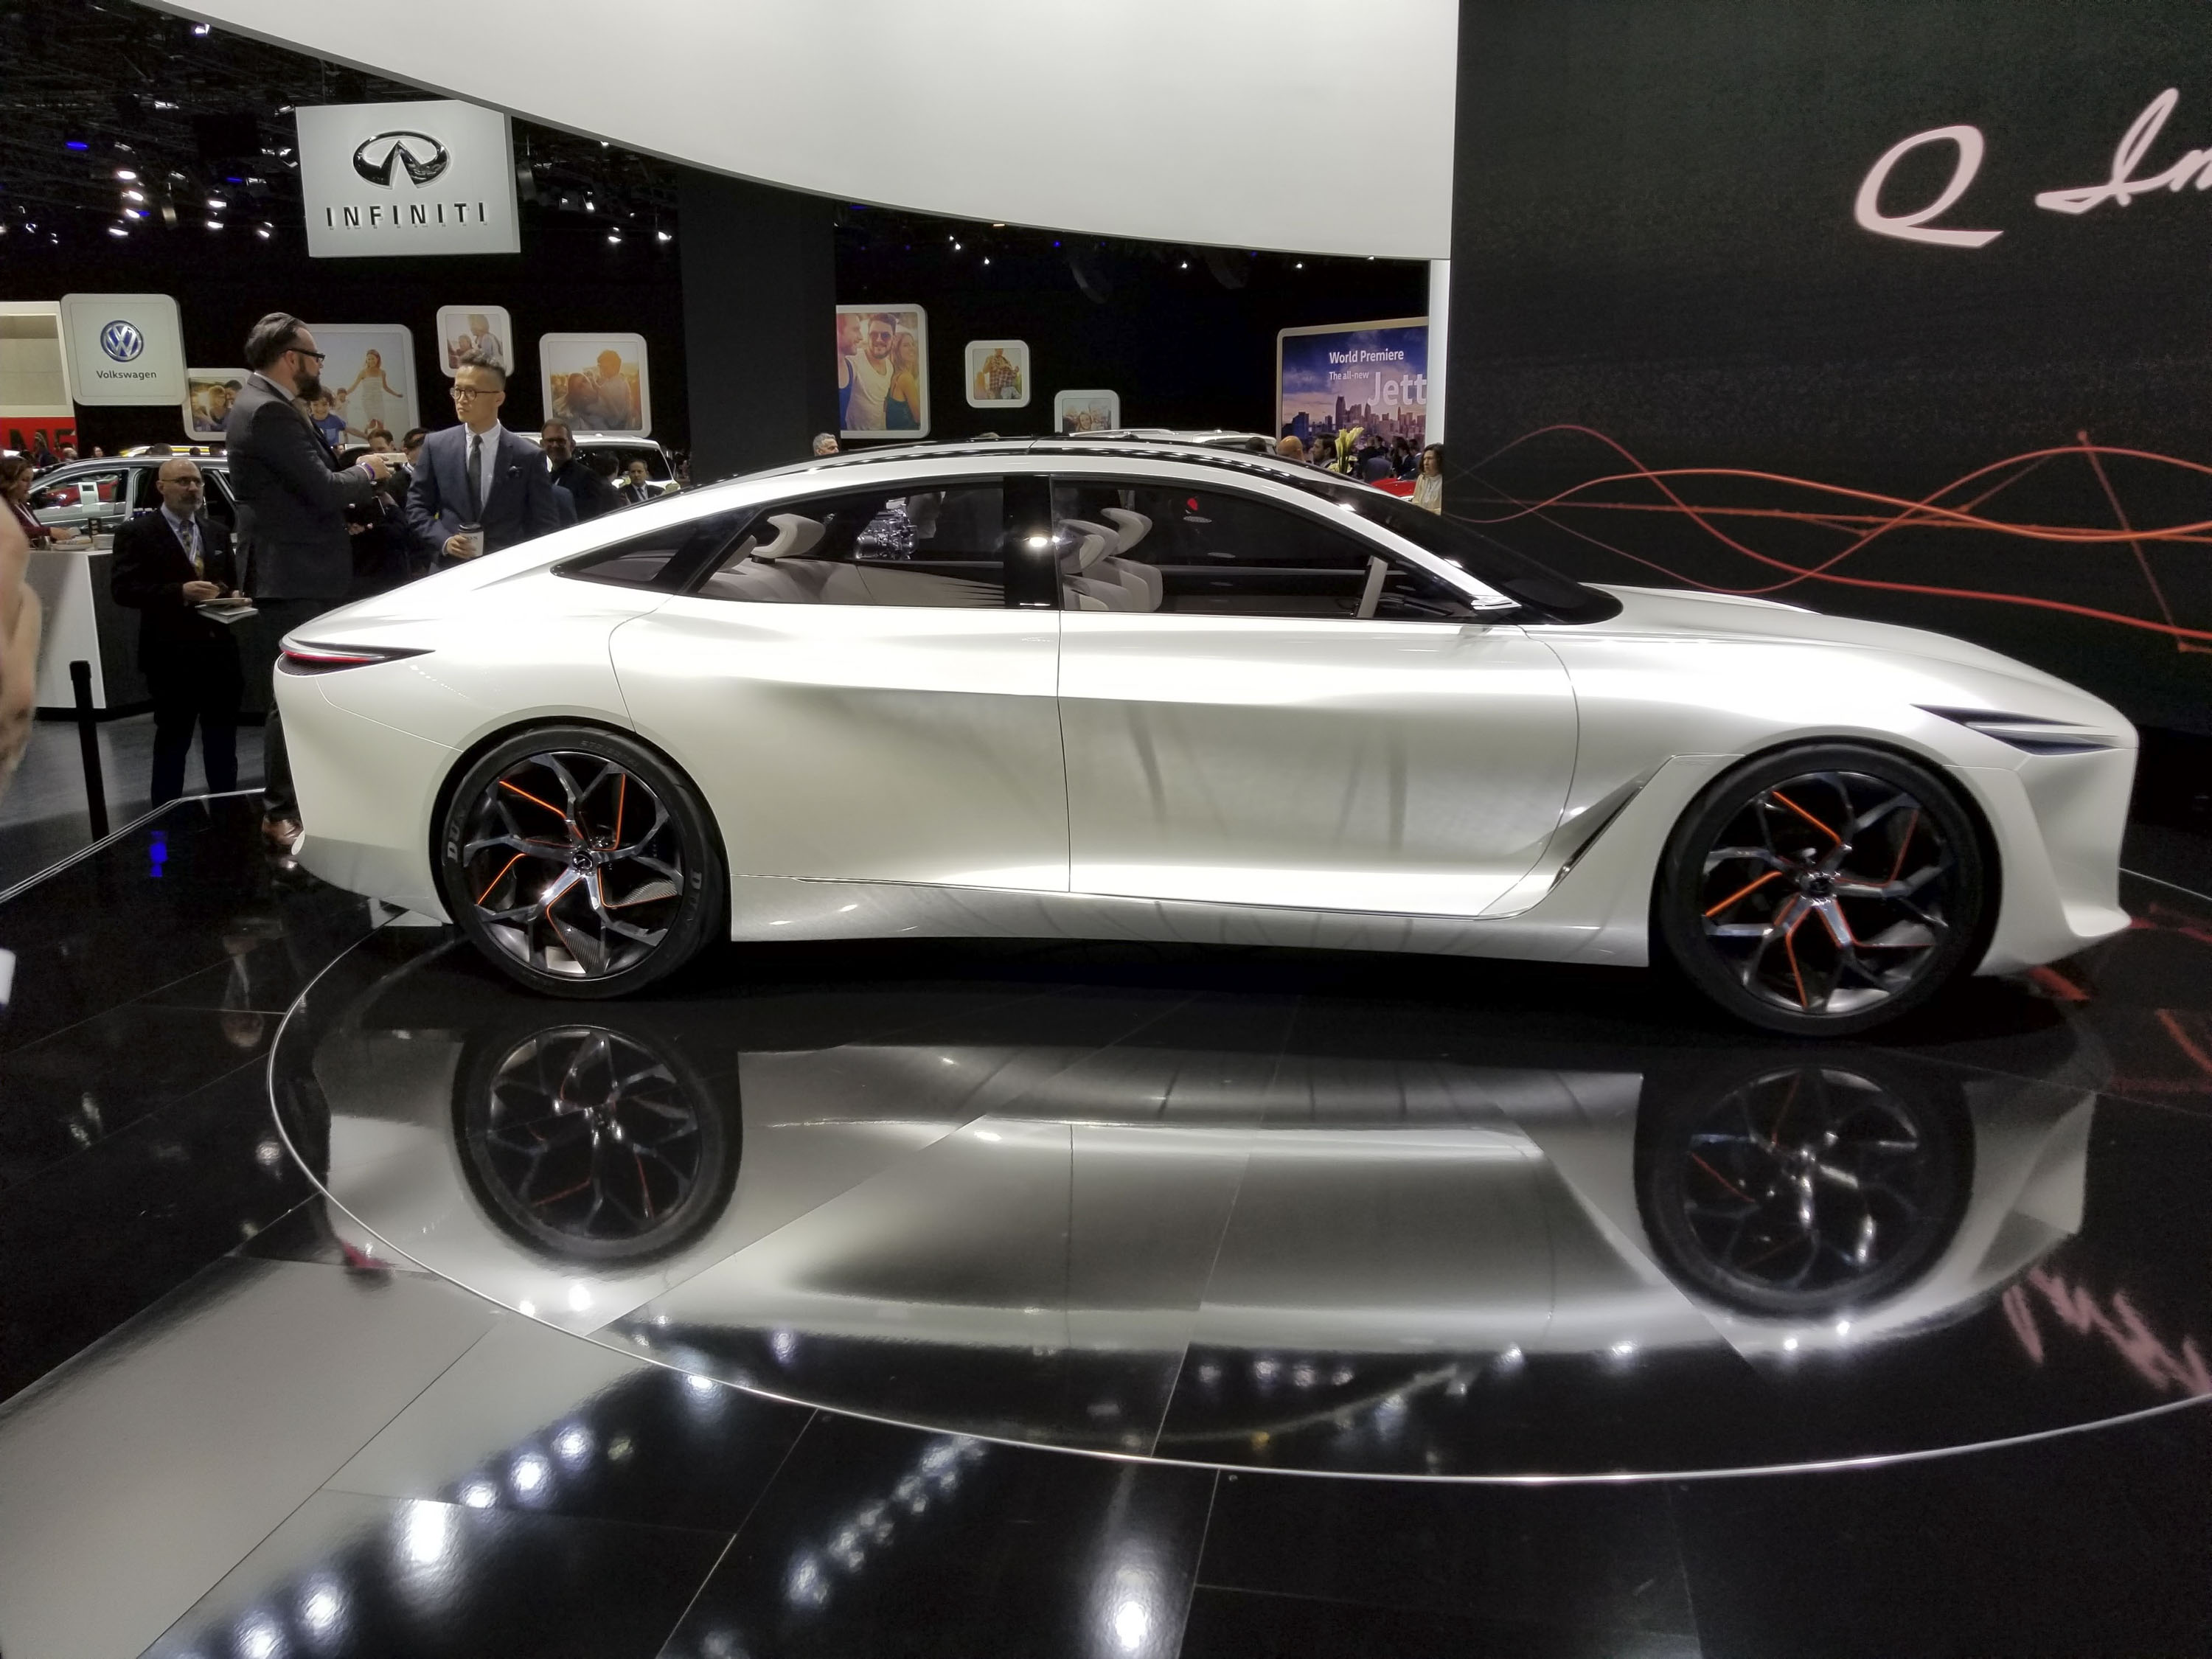 2018 infiniti q inspiration concept review top speed 2018 infiniti q inspiration concept review top speed biocorpaavc Image collections